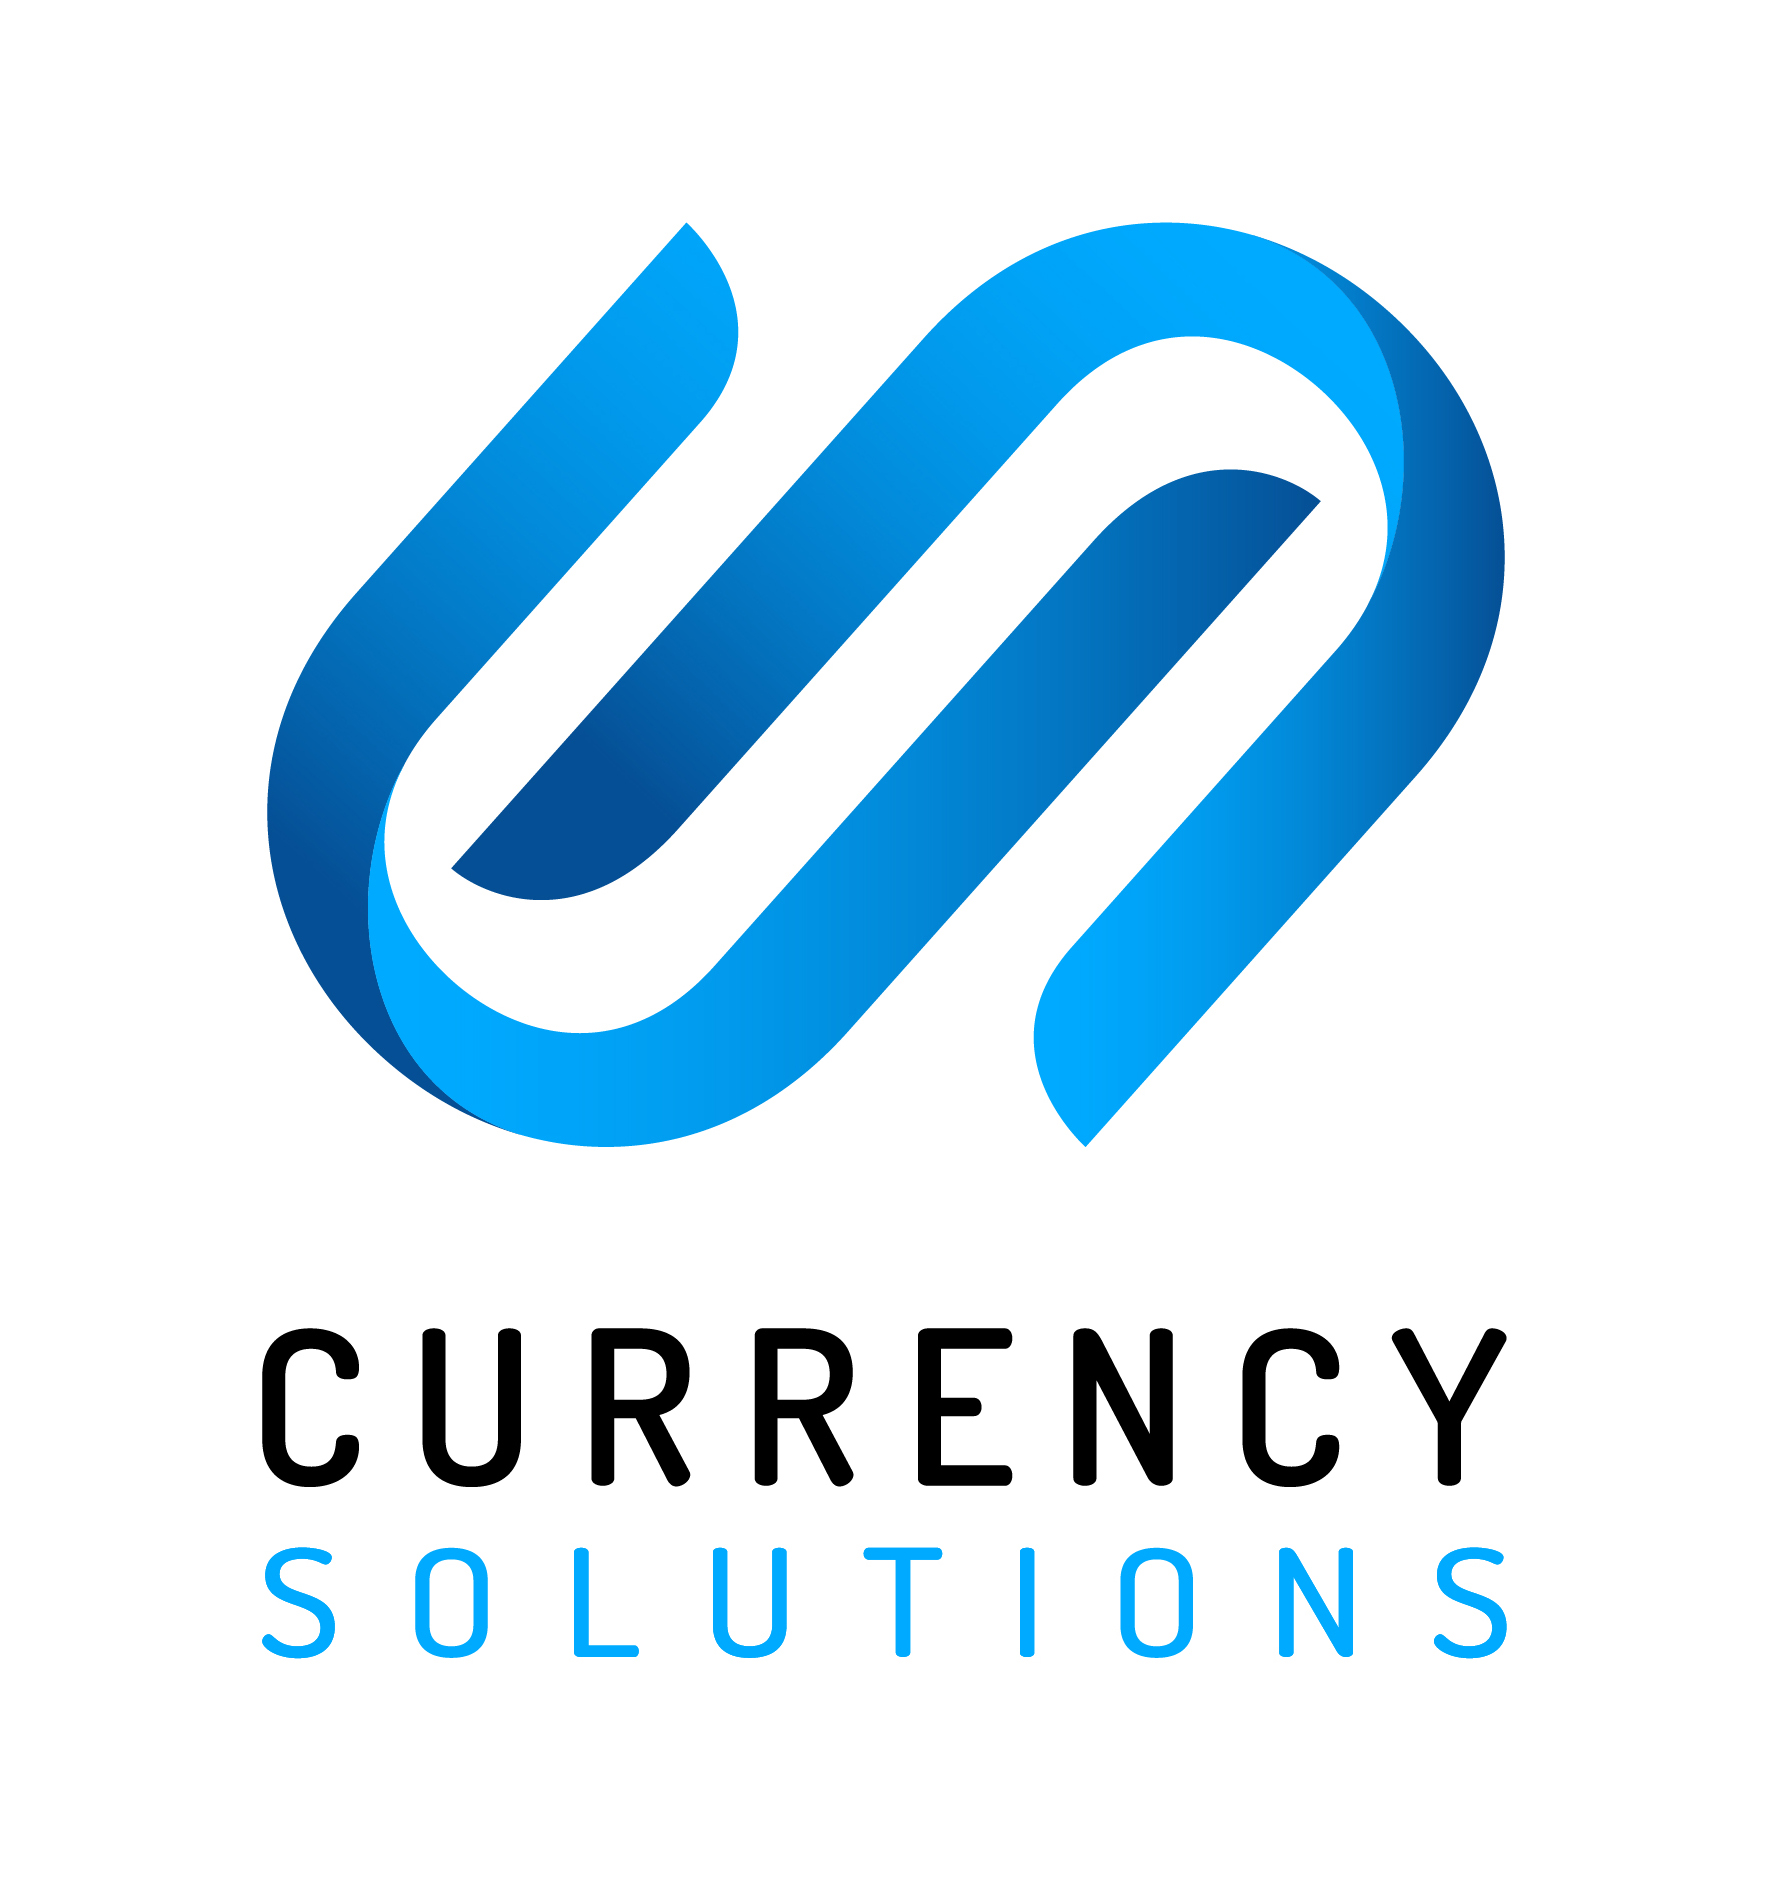 Логотип компании «Currency Solutions»